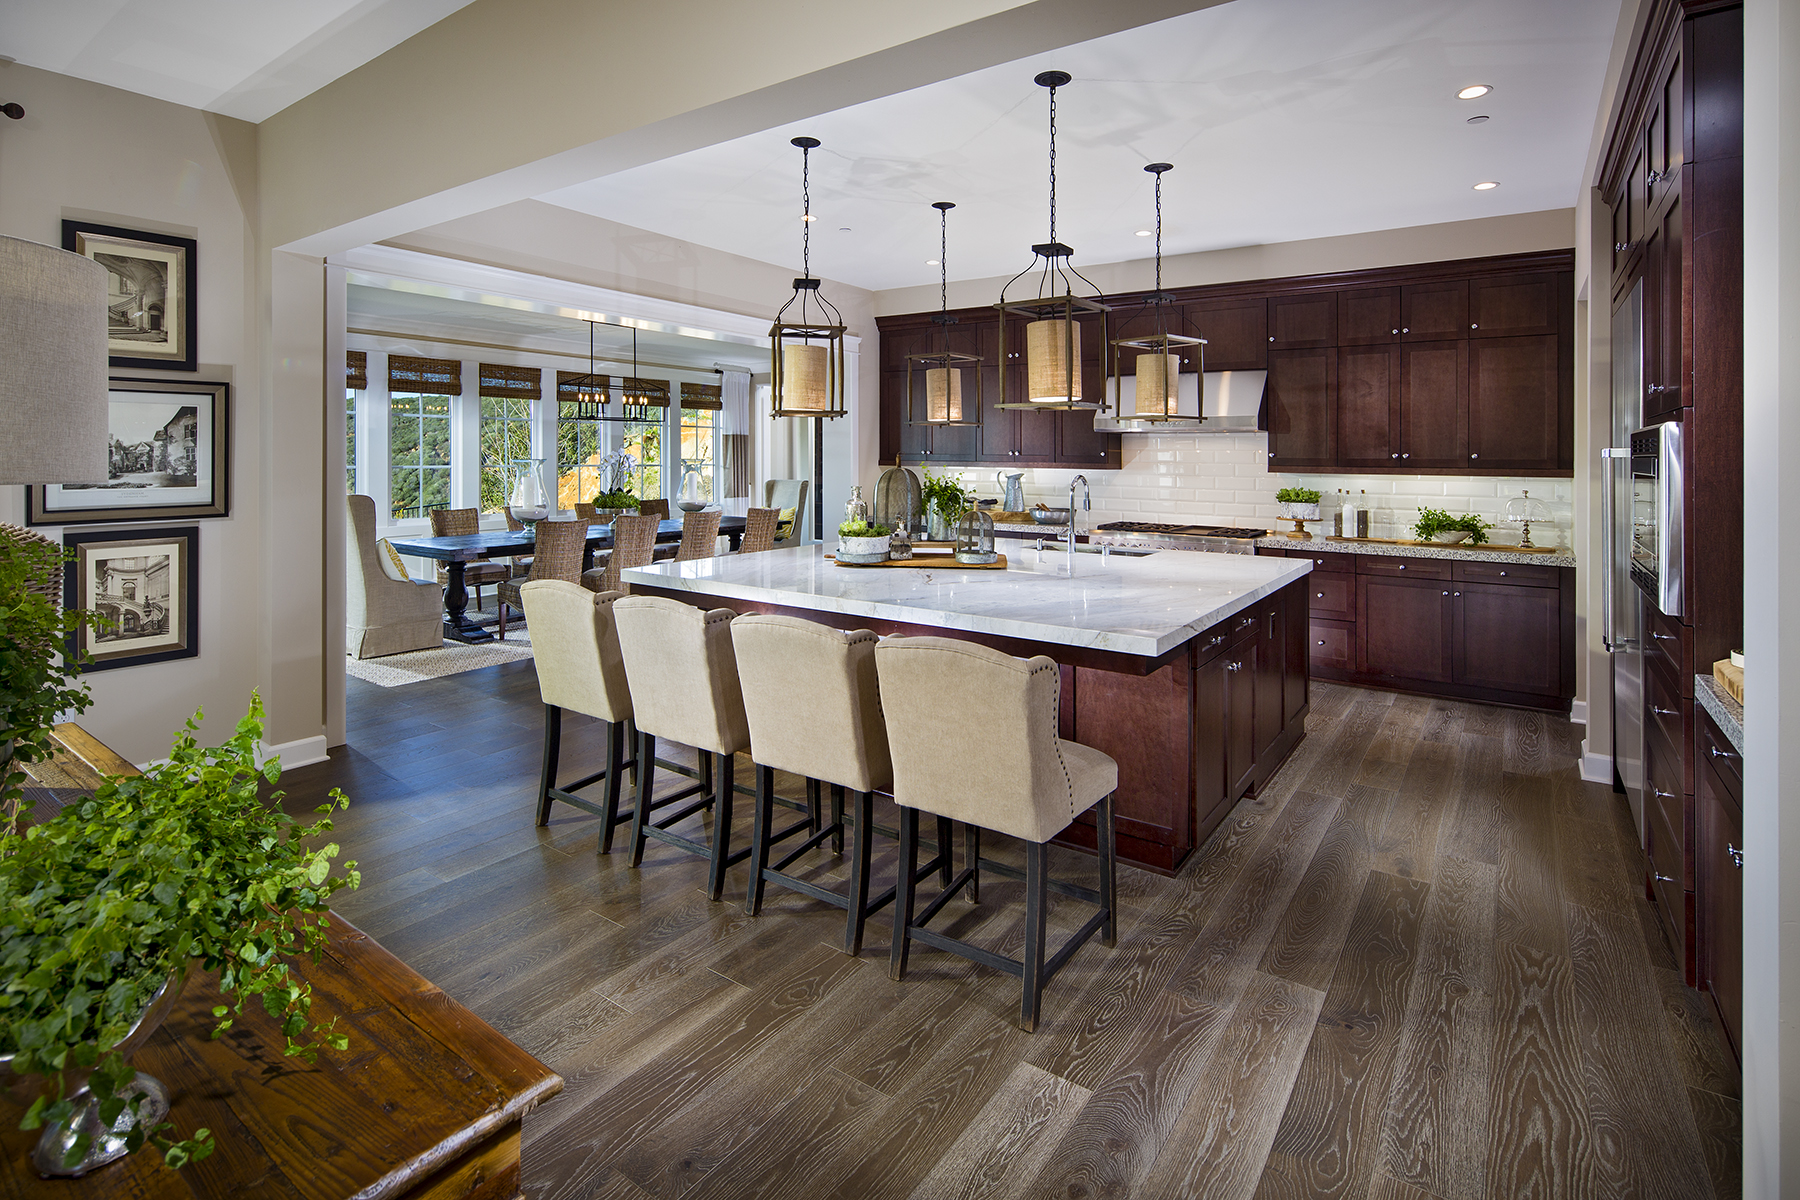 1703-03_PL1_Kitchen_The_Estates_DavidsonCommunities_EricFiggePhotos.jpg